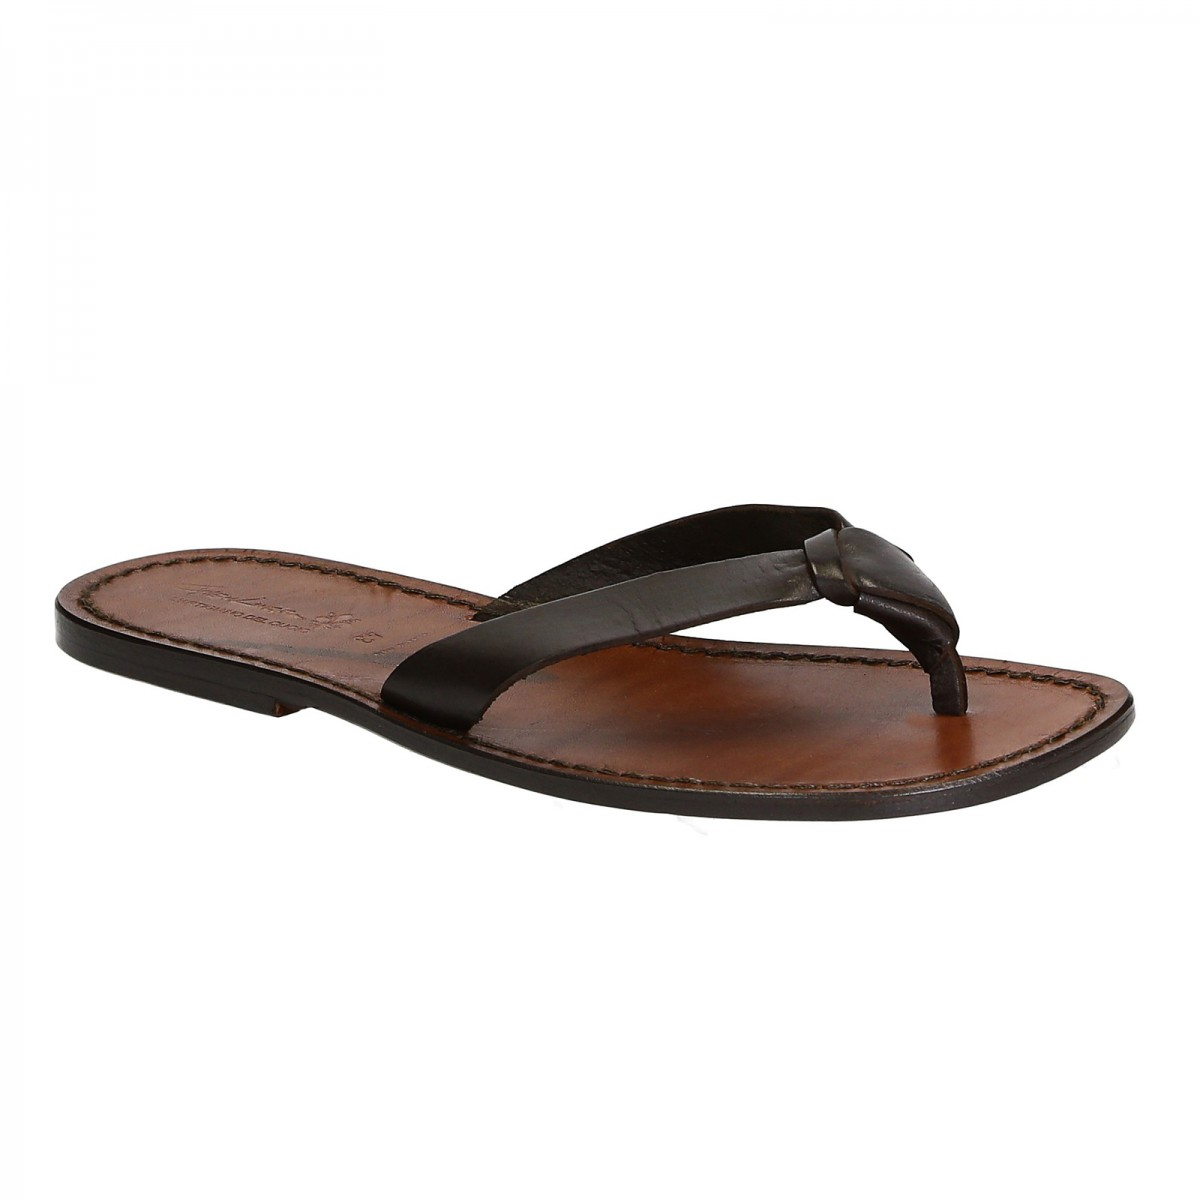 cfab0451f Handmade leather thongs for men with leather sole. Loading zoom